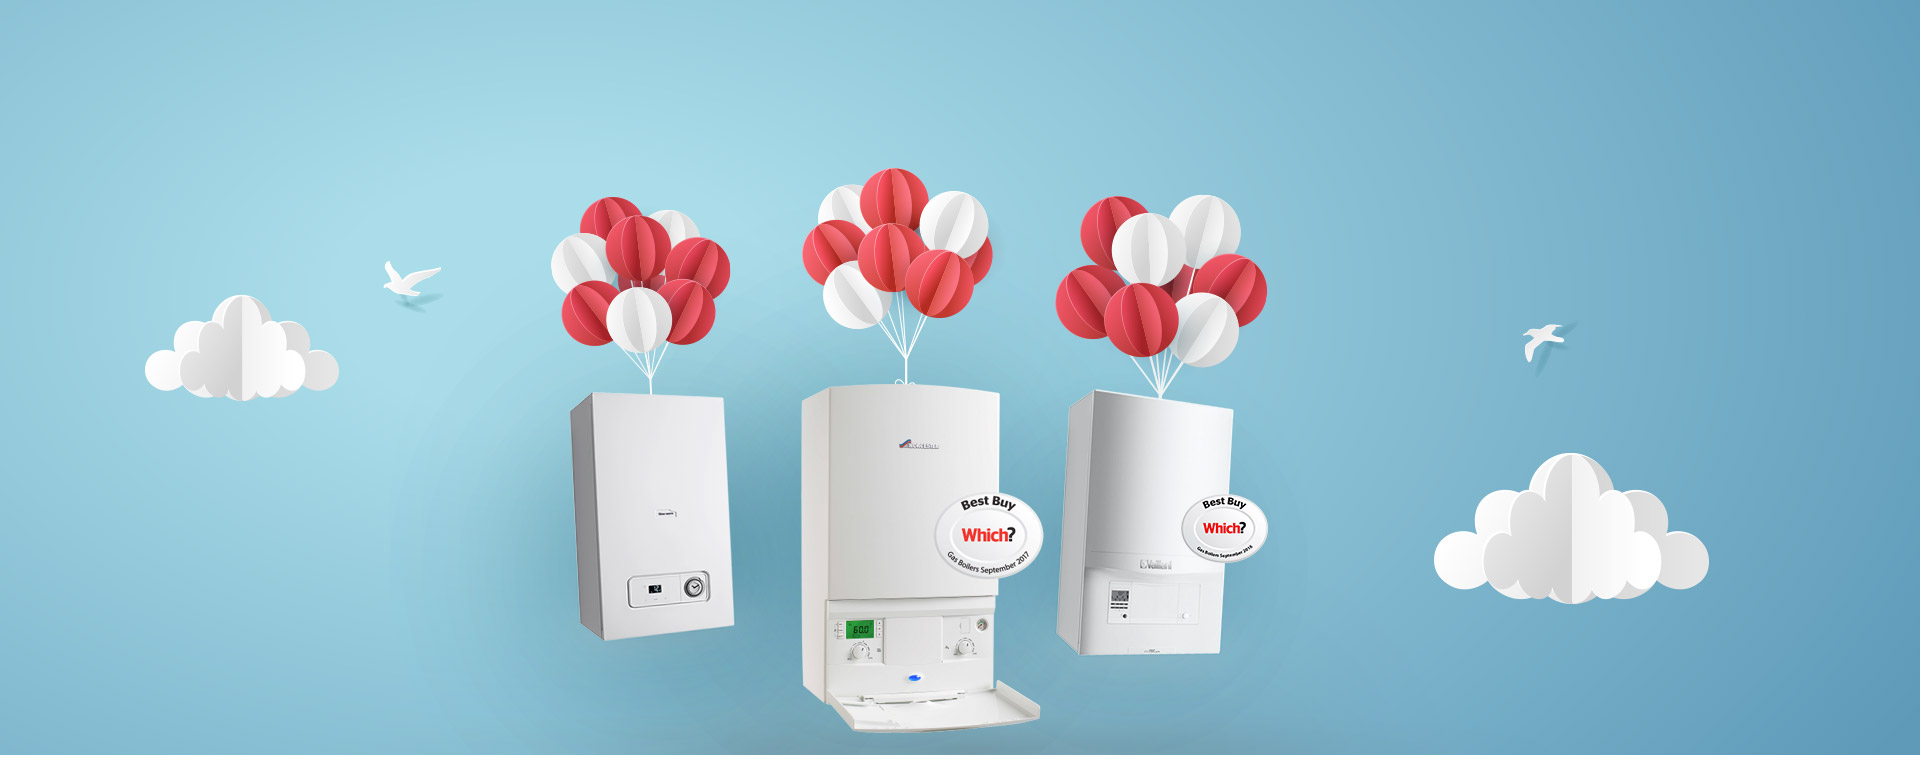 Get Your New Boiler Instant Quote